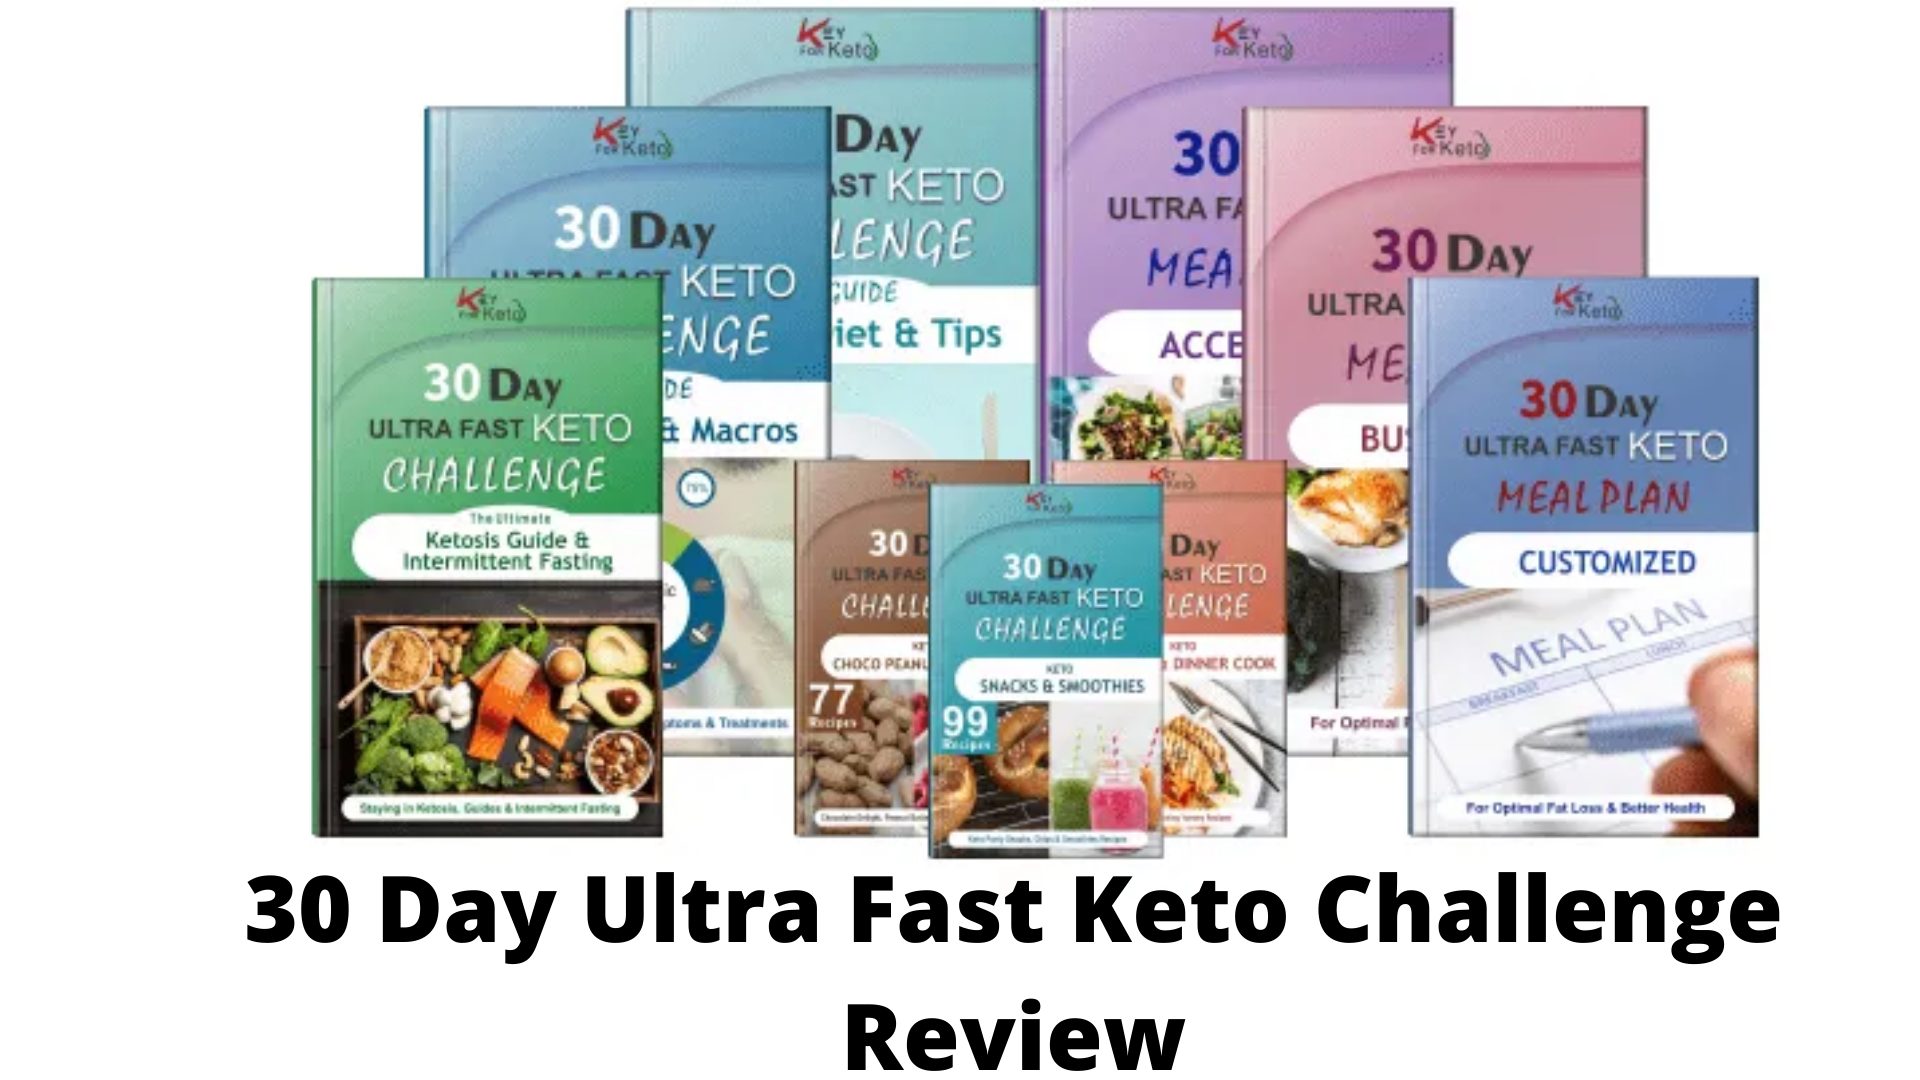 30 Day Ultra Fast Keto Challenge Review-Is this worth it?